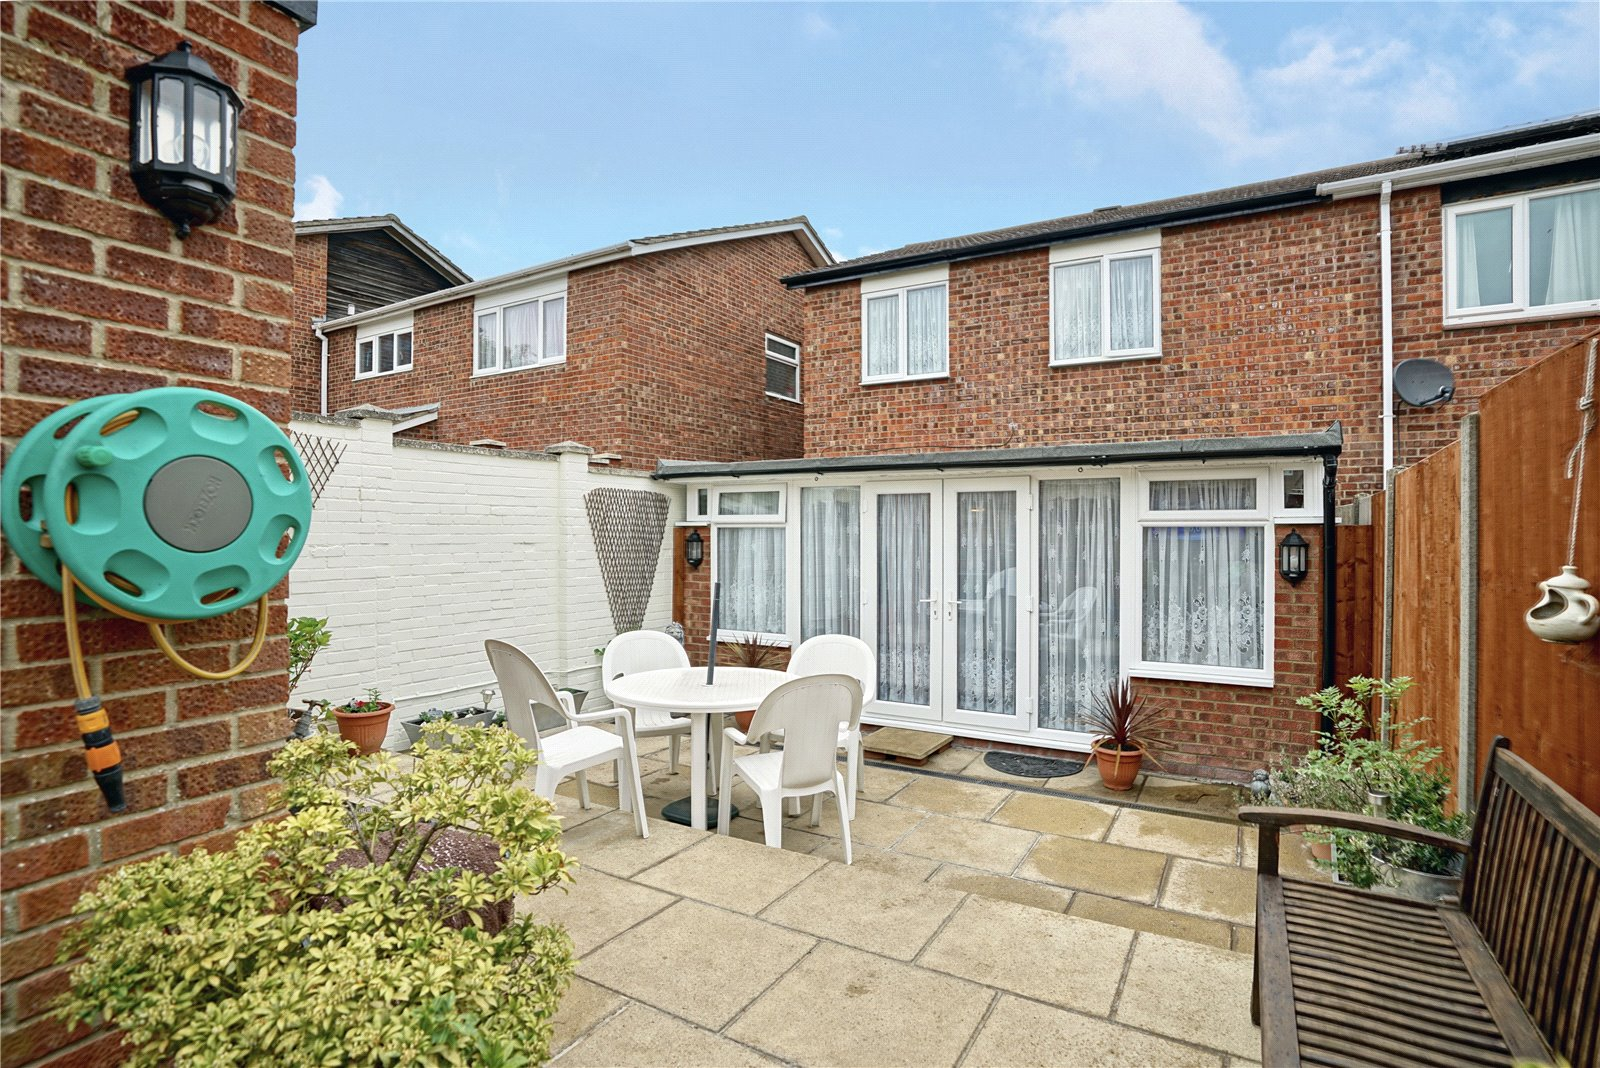 3 bed house for sale in Countess Close, Eaton Socon  - Property Image 4